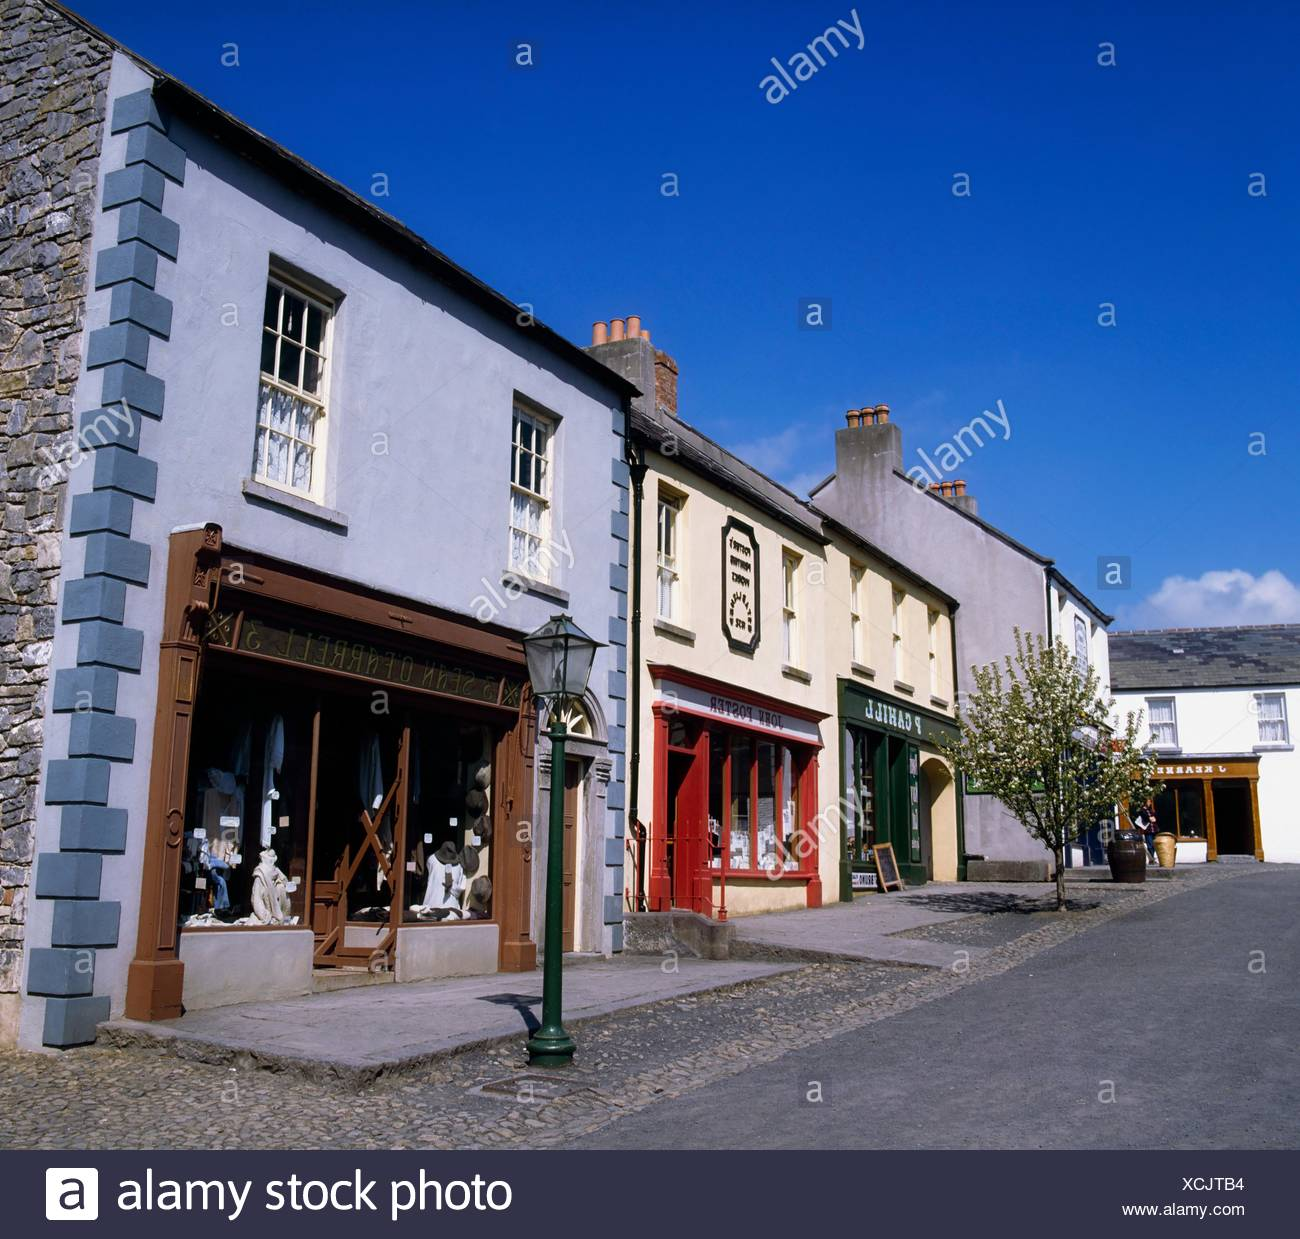 Bunratty Castle And Folk Park, Co Clare, Ireland; Folk Park Recreating 19Th Century Life - Stock Image